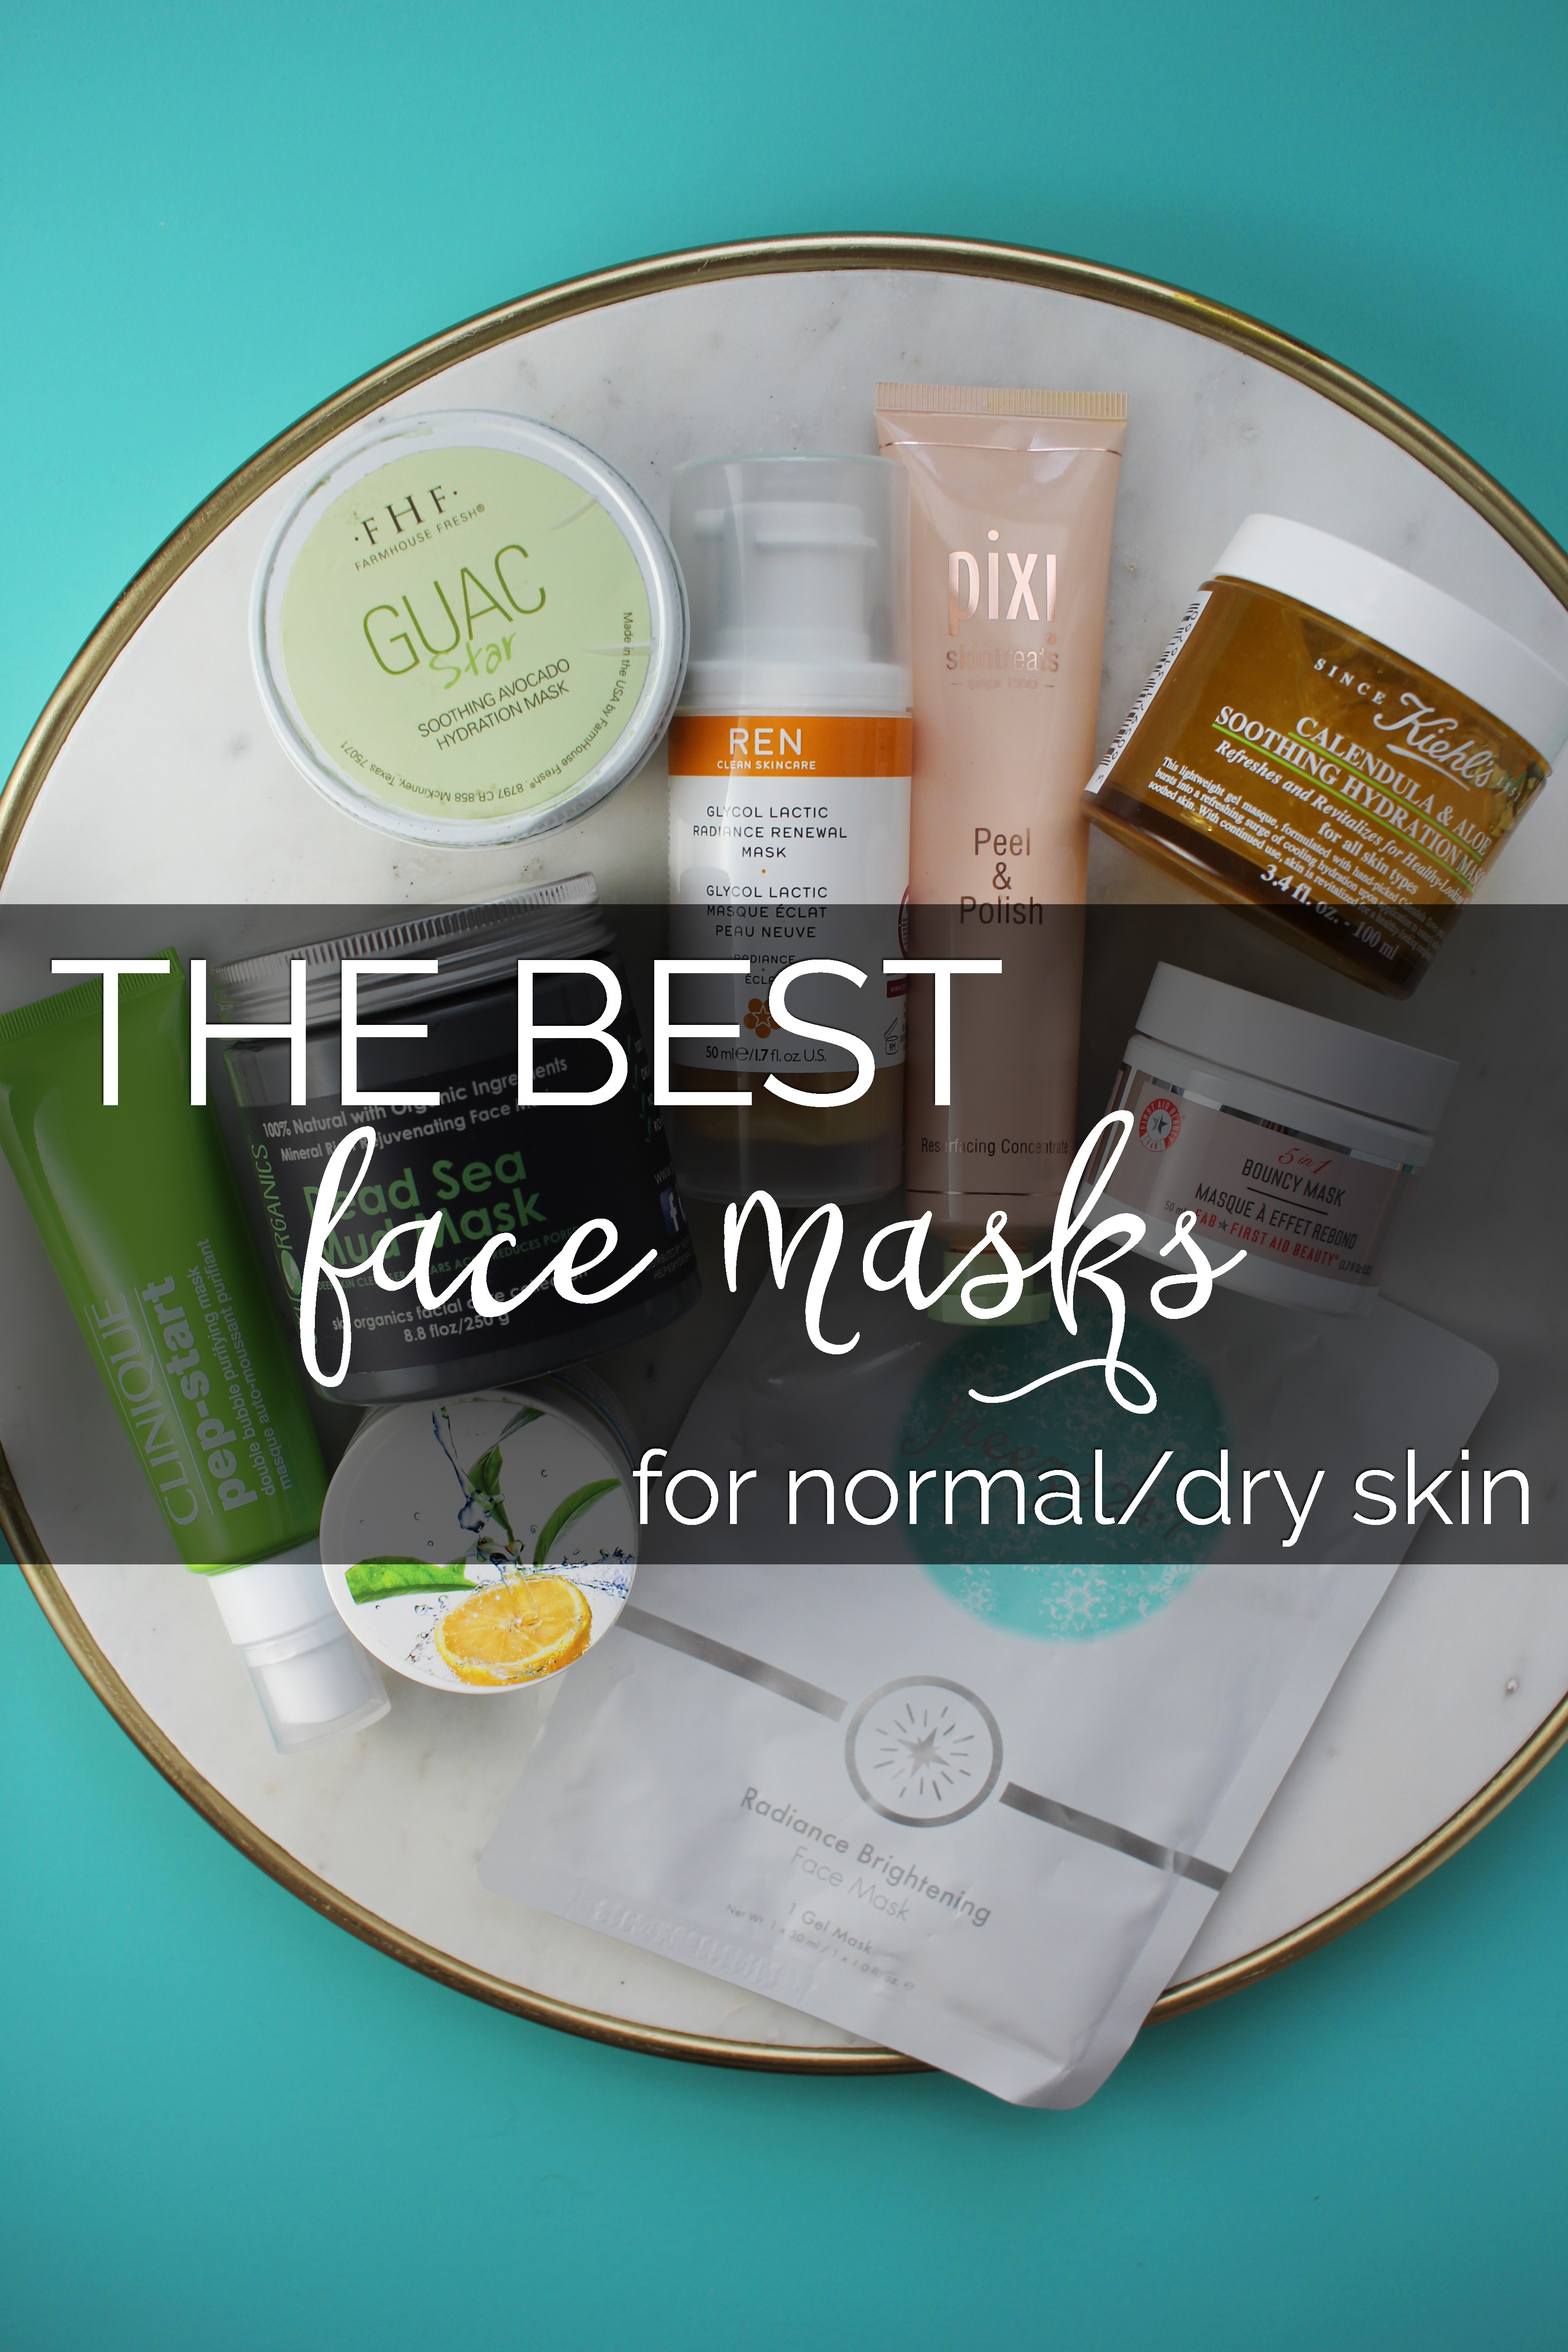 The Best Face Masks for Normal/Dry Skin